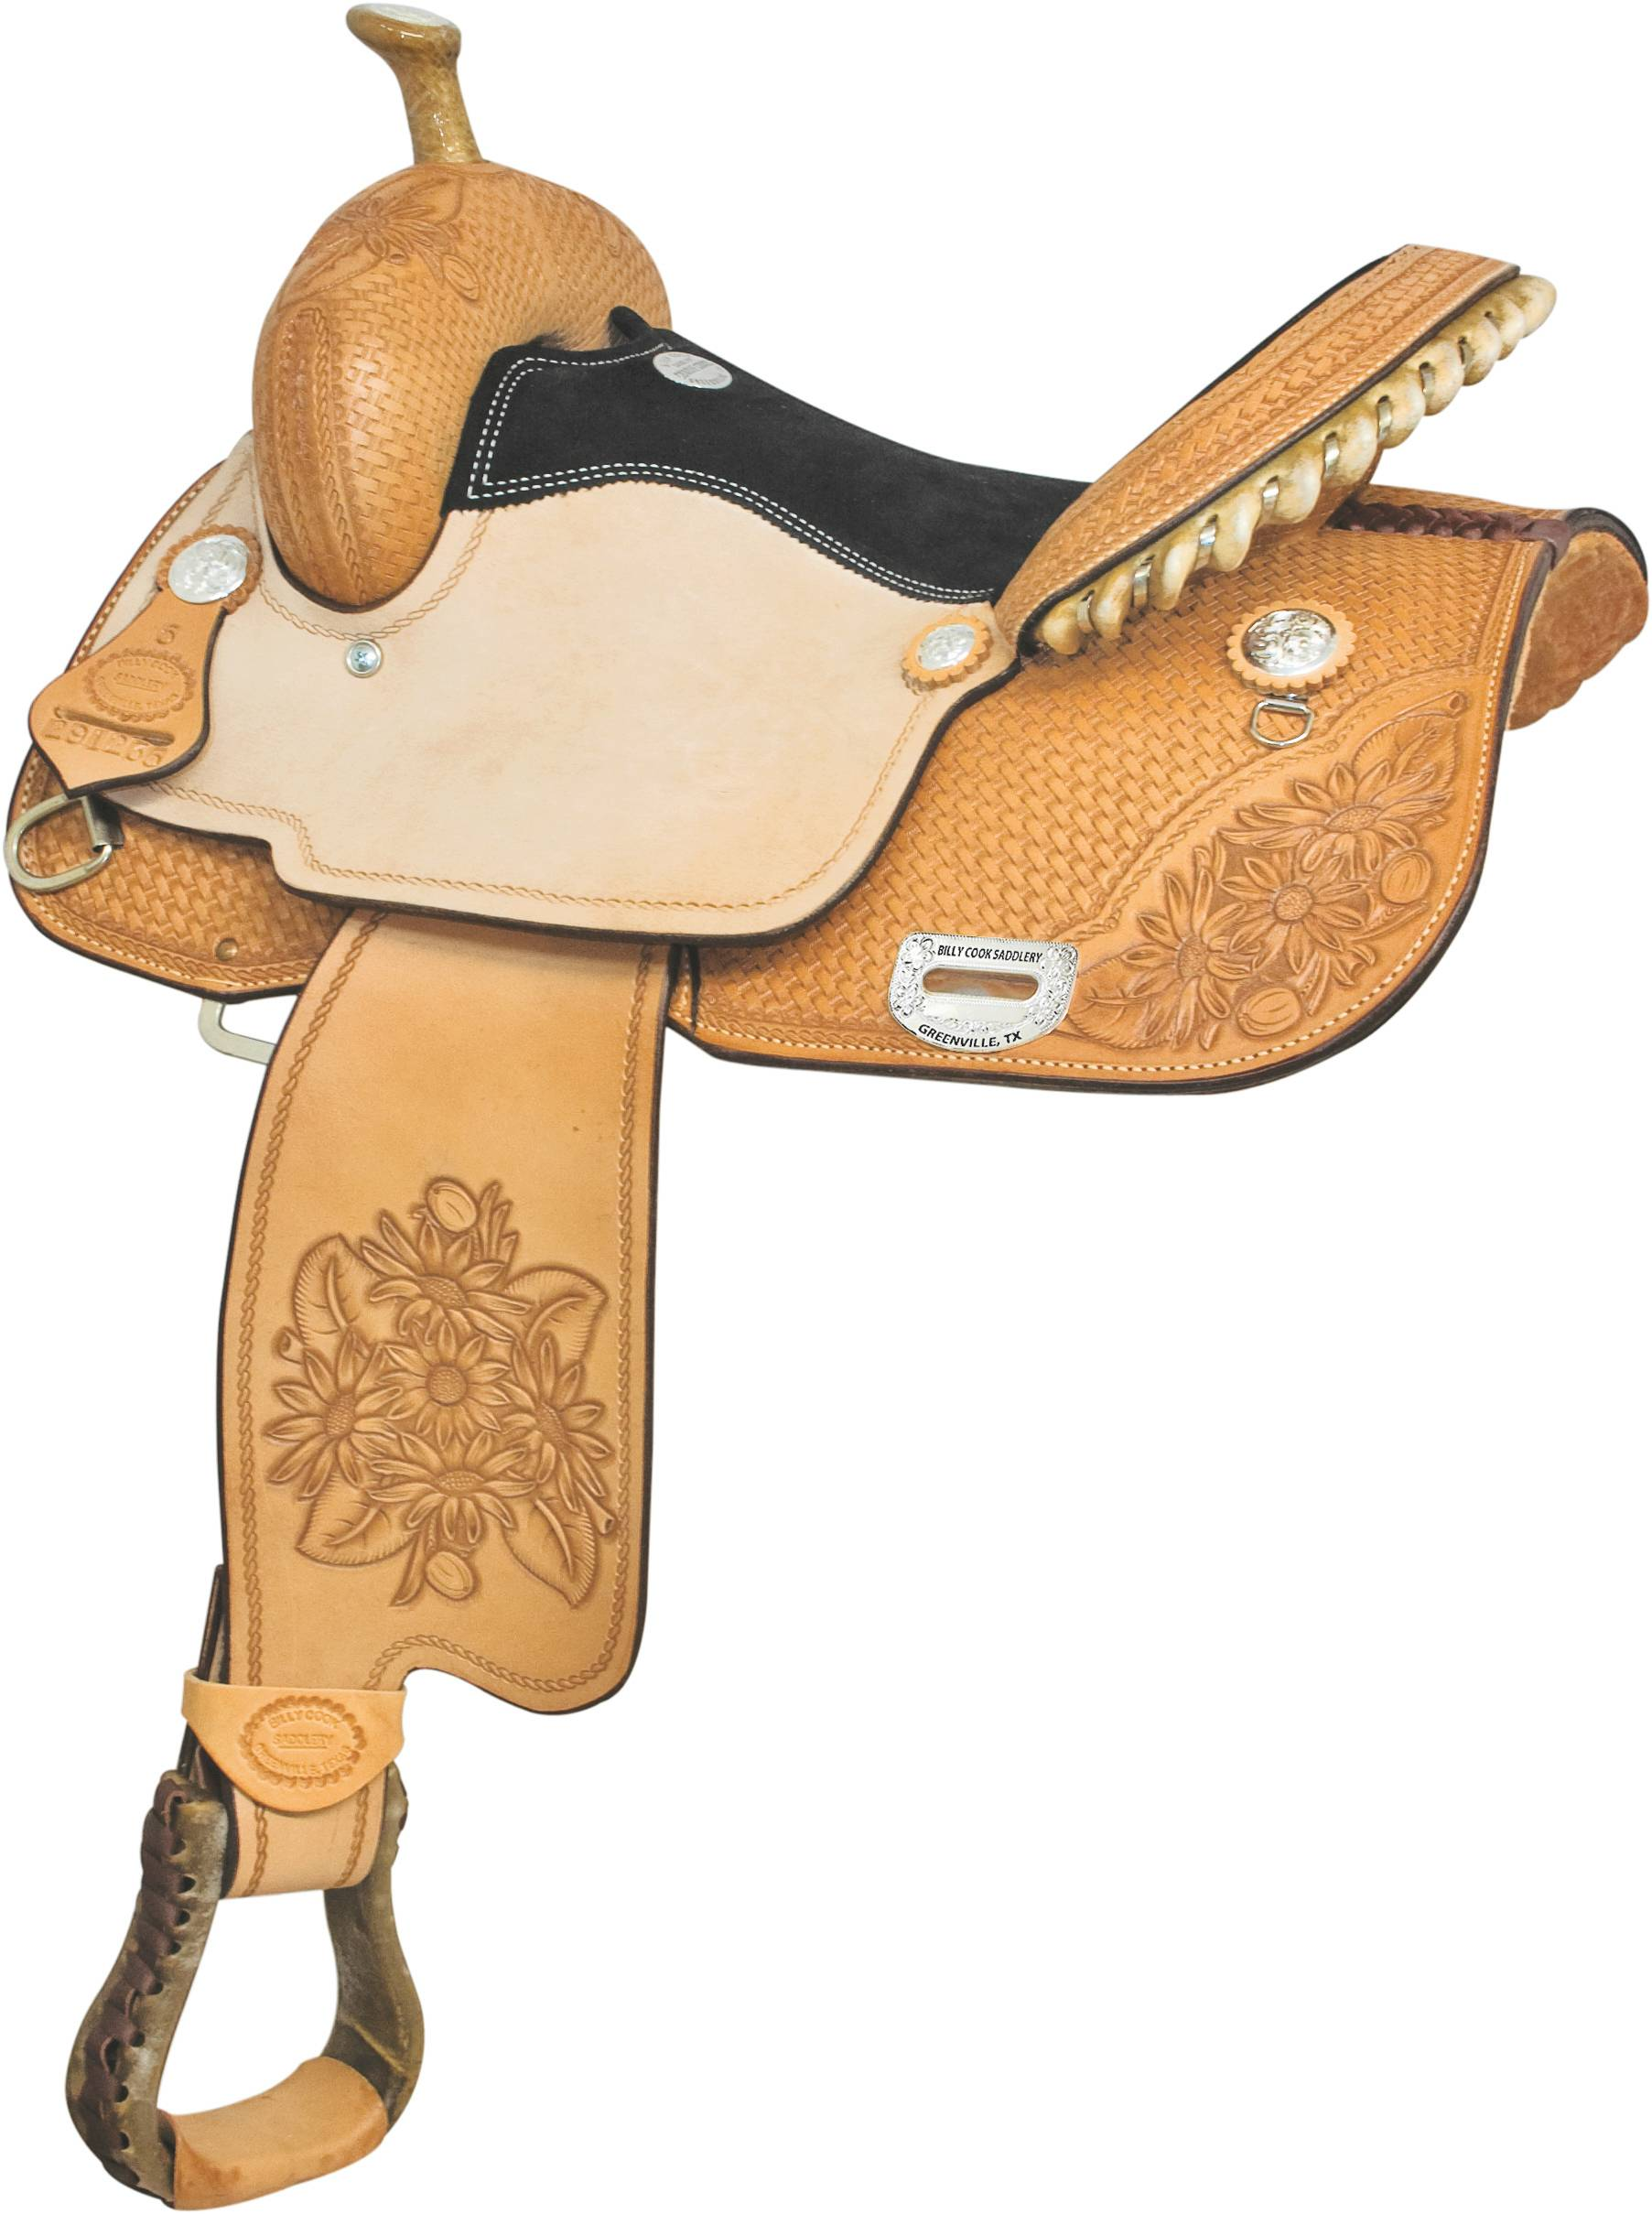 Billy Cook Saddlery Connie Combs Sunflower Barrel Saddle